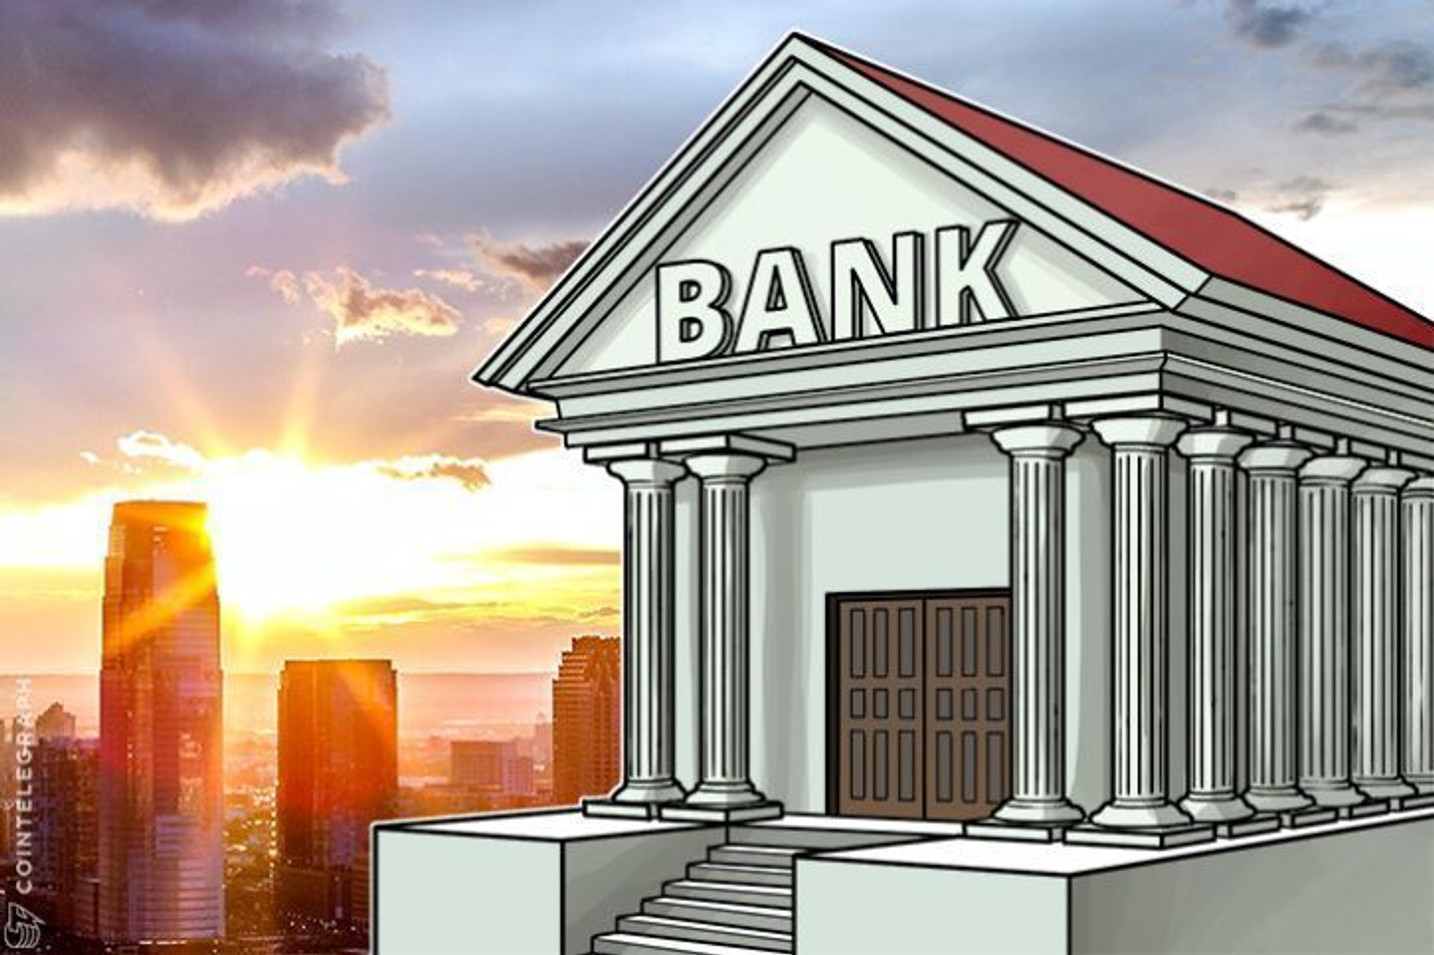 According to BNP Paribas, Absence of Central Bank Will Limit Bitcoin's Future